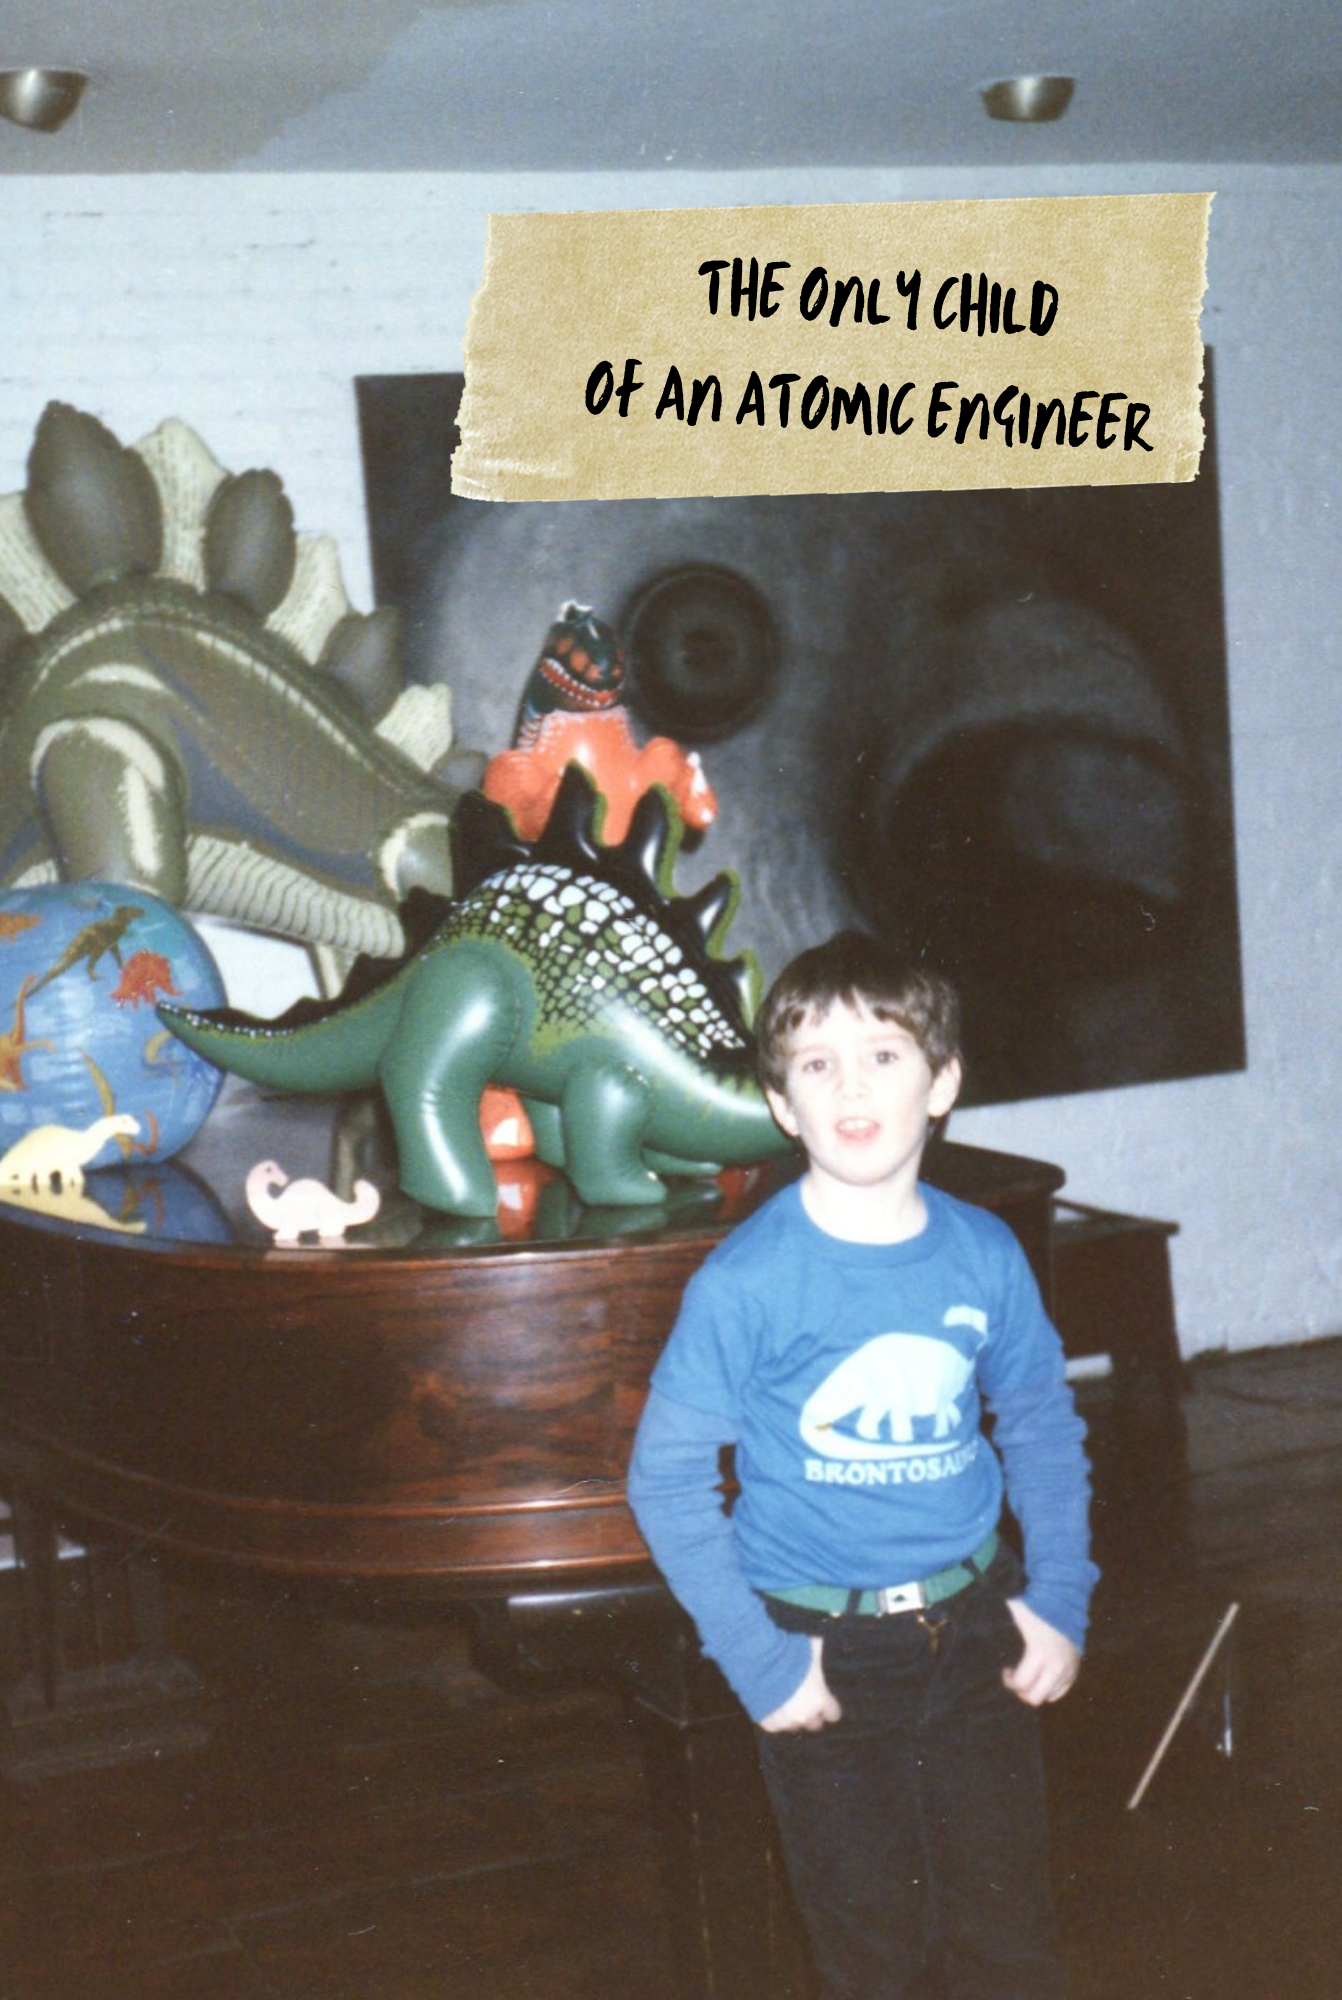 The Only Child Of An Atomic Engineer – Press Release